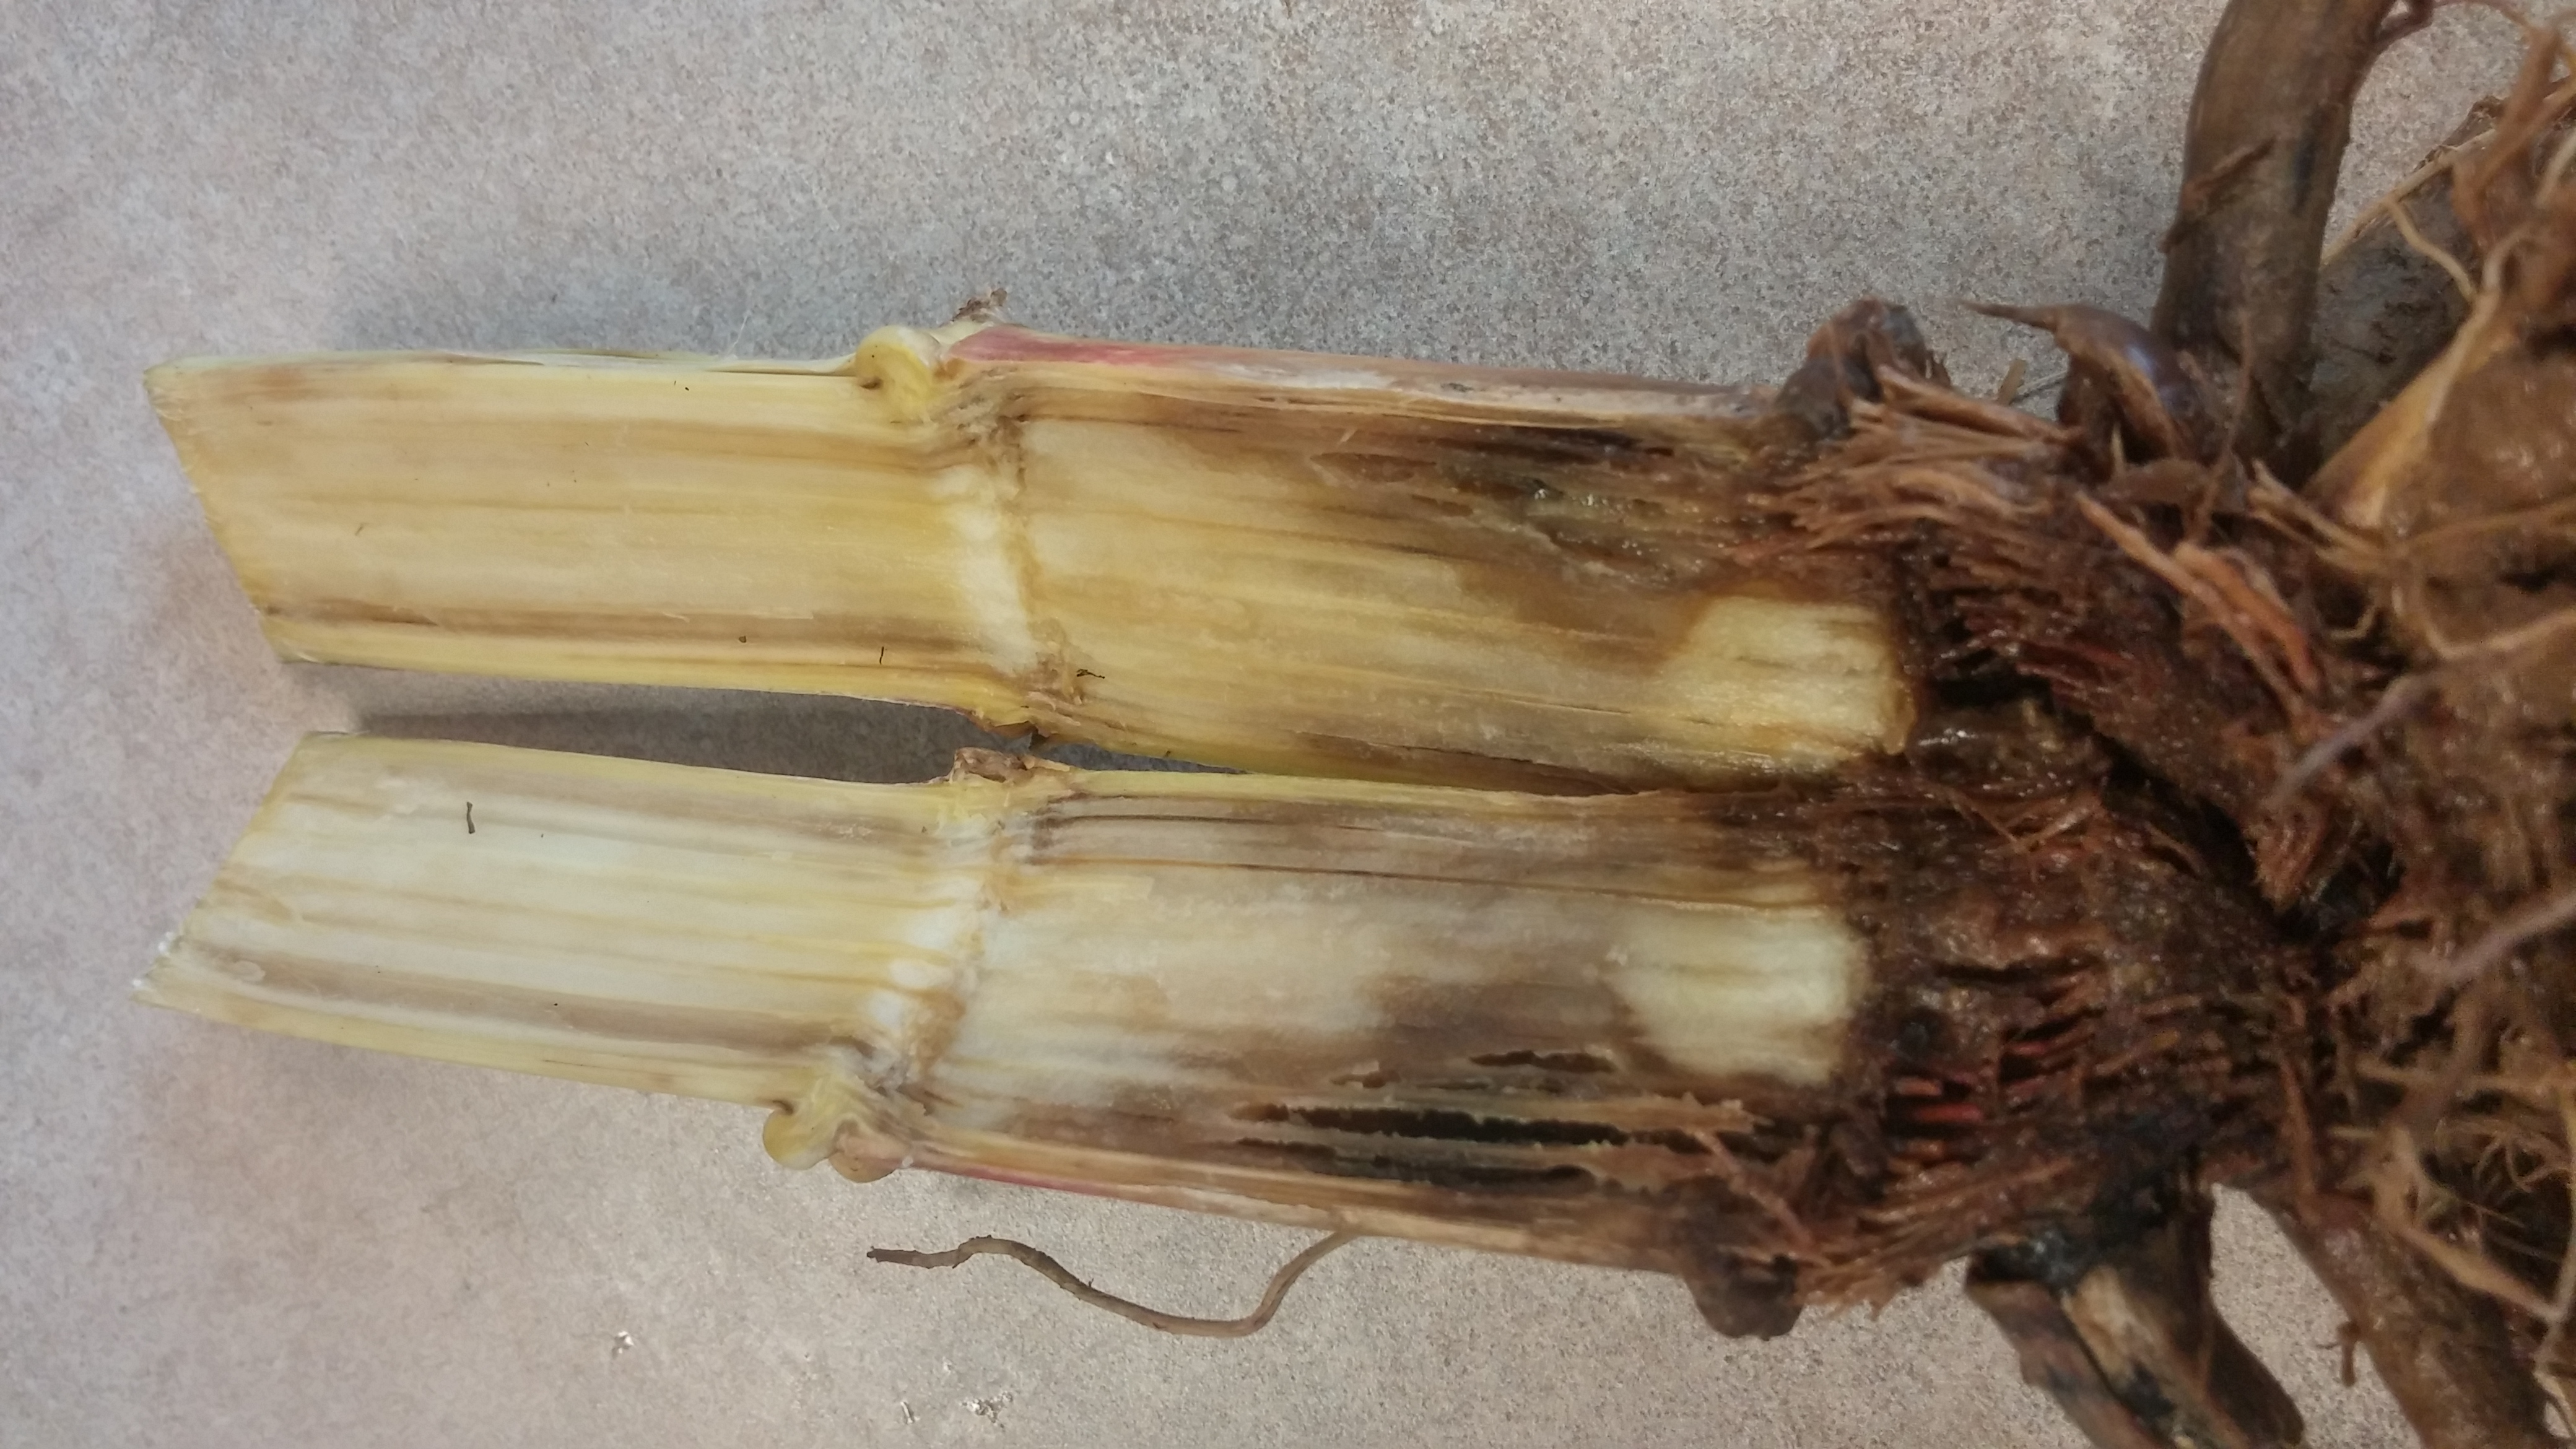 Rot and discoloration symptomatic of Fusarium root rot.